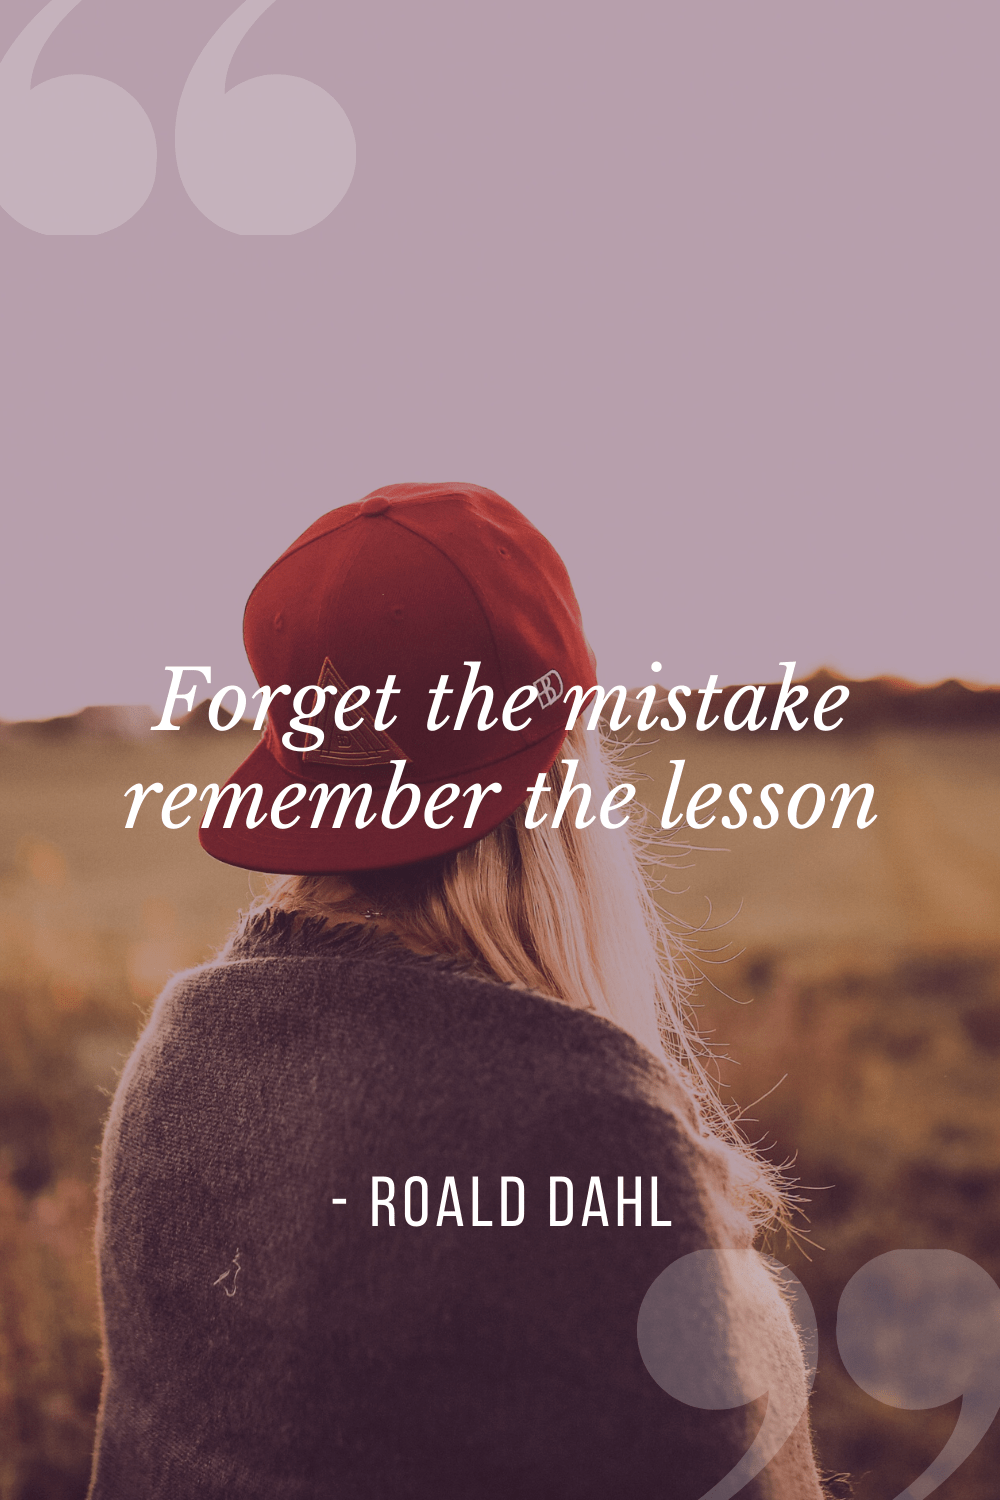 """Forget the mistake, remember the lesson"", Roald Dahl"